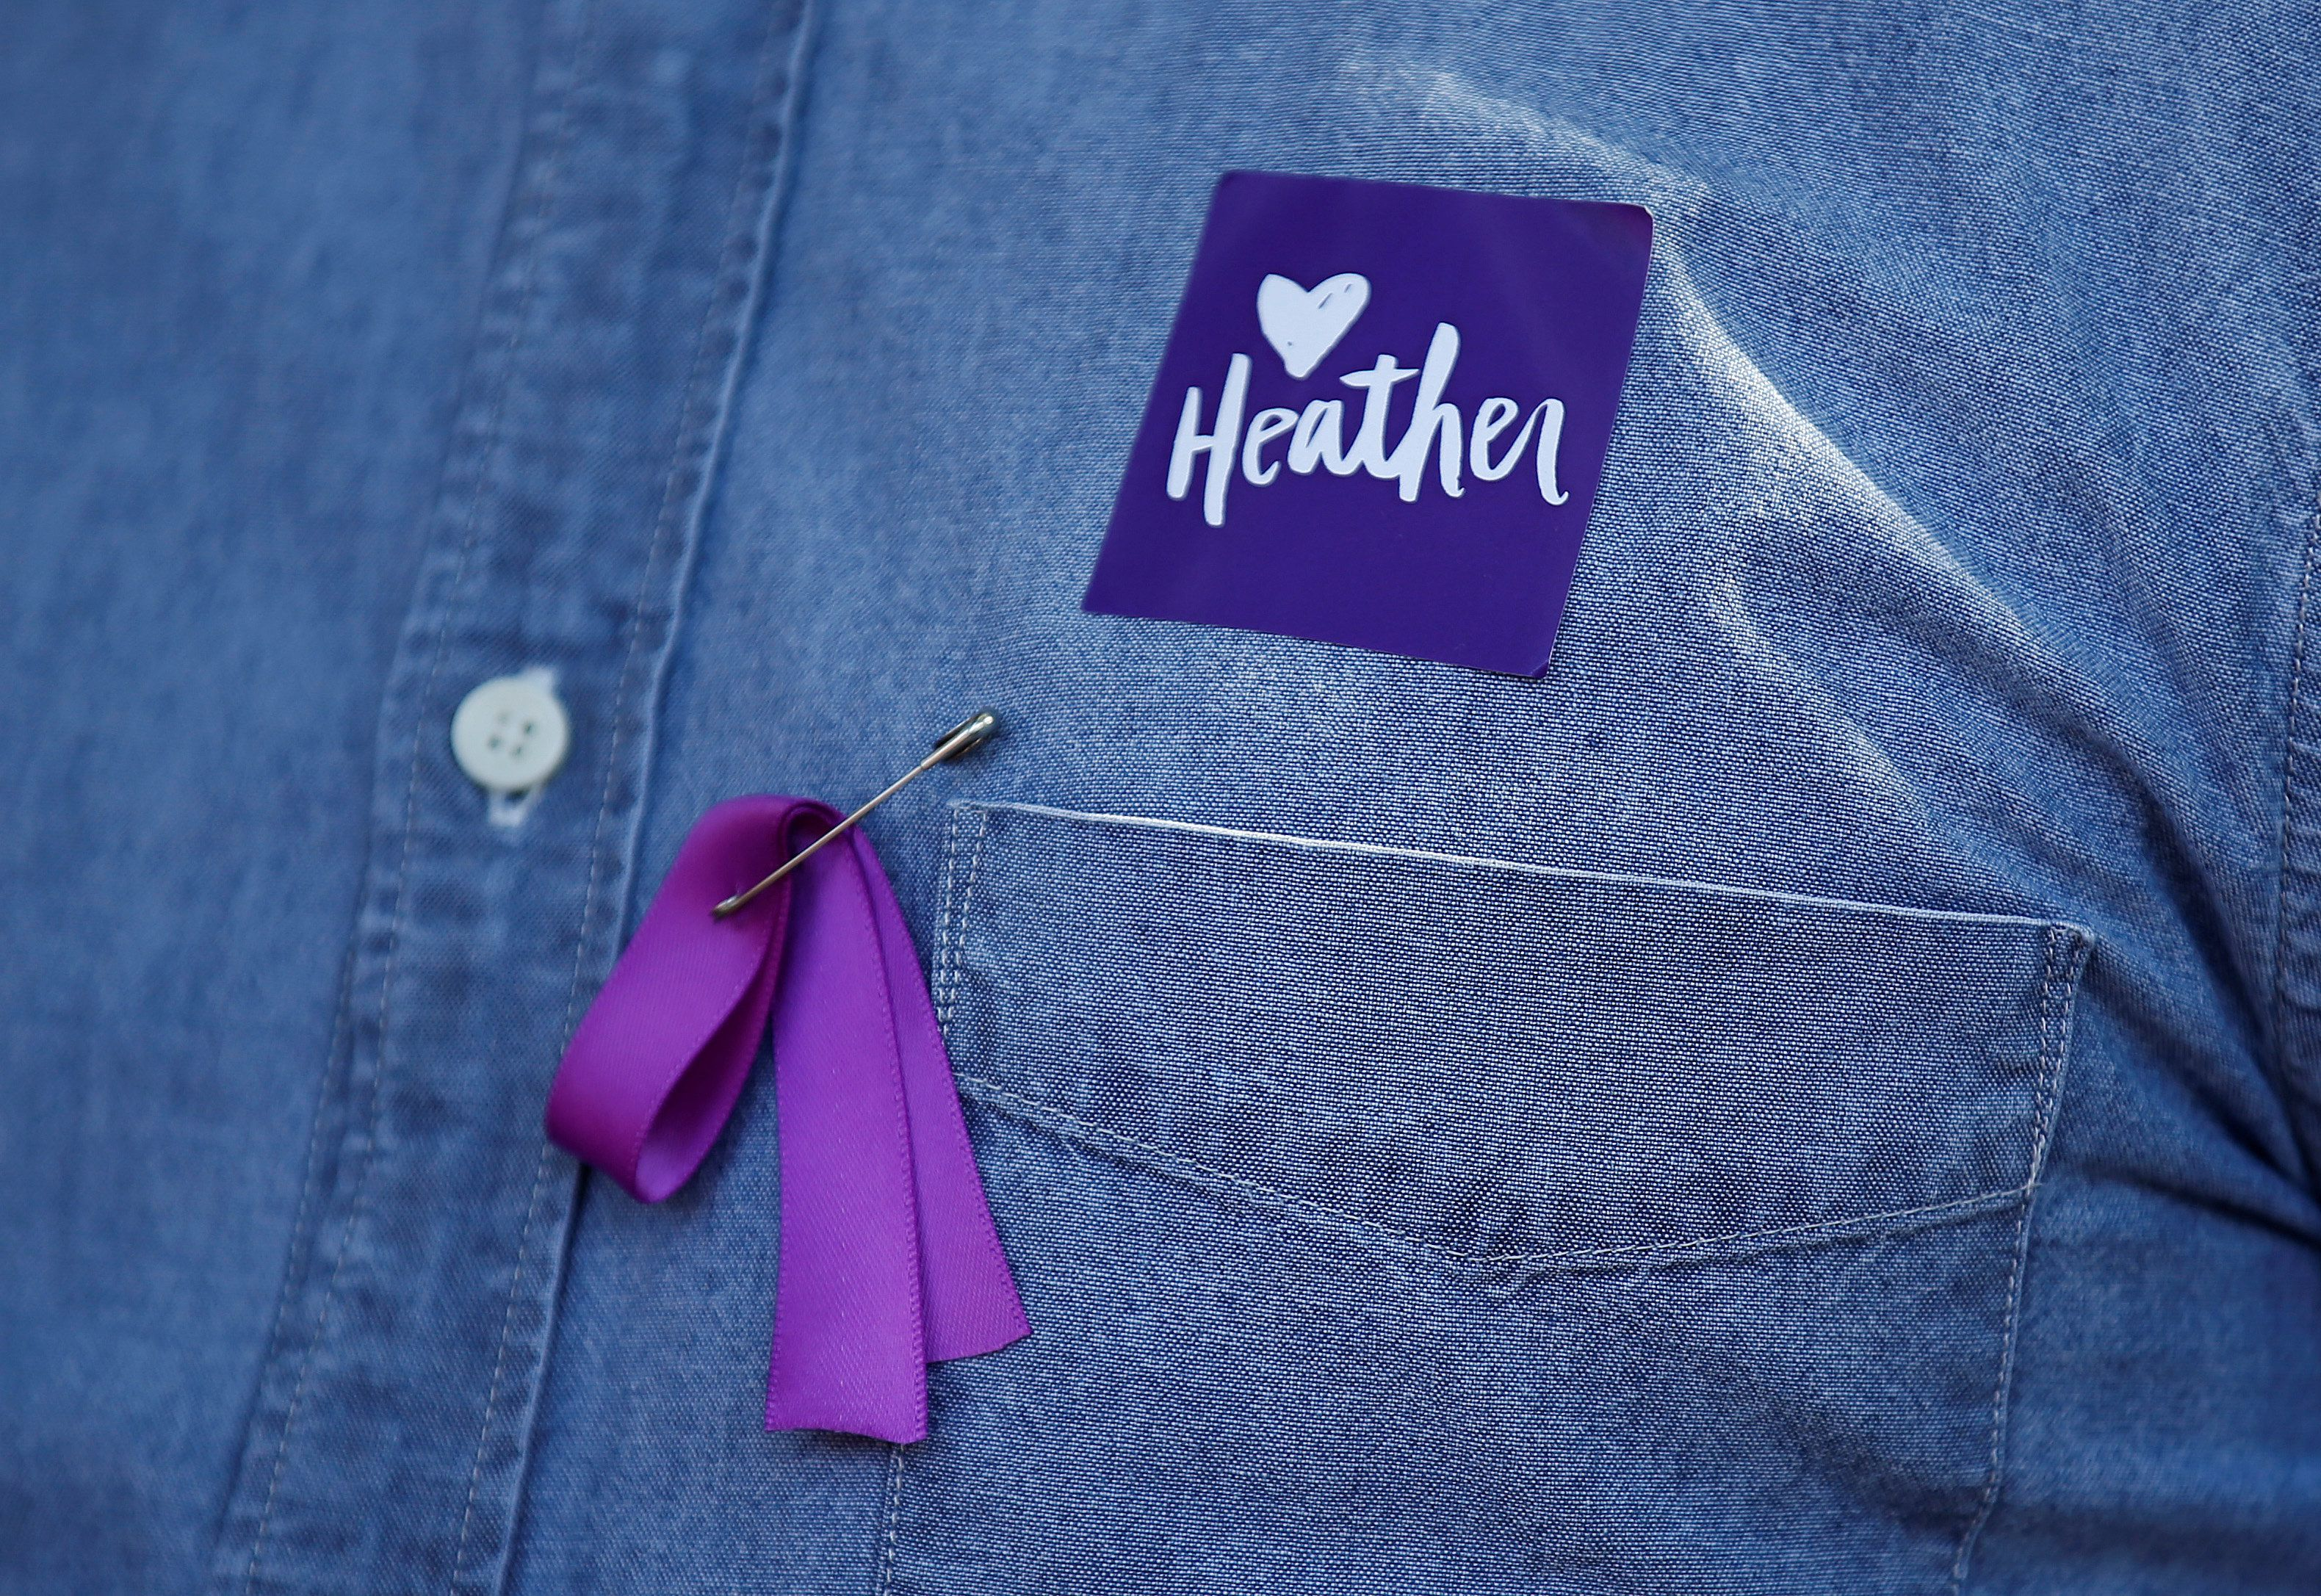 A man wears a purple ribbon to remember Heather Heyer, who was killed protesting during a white supremacist rally, as he